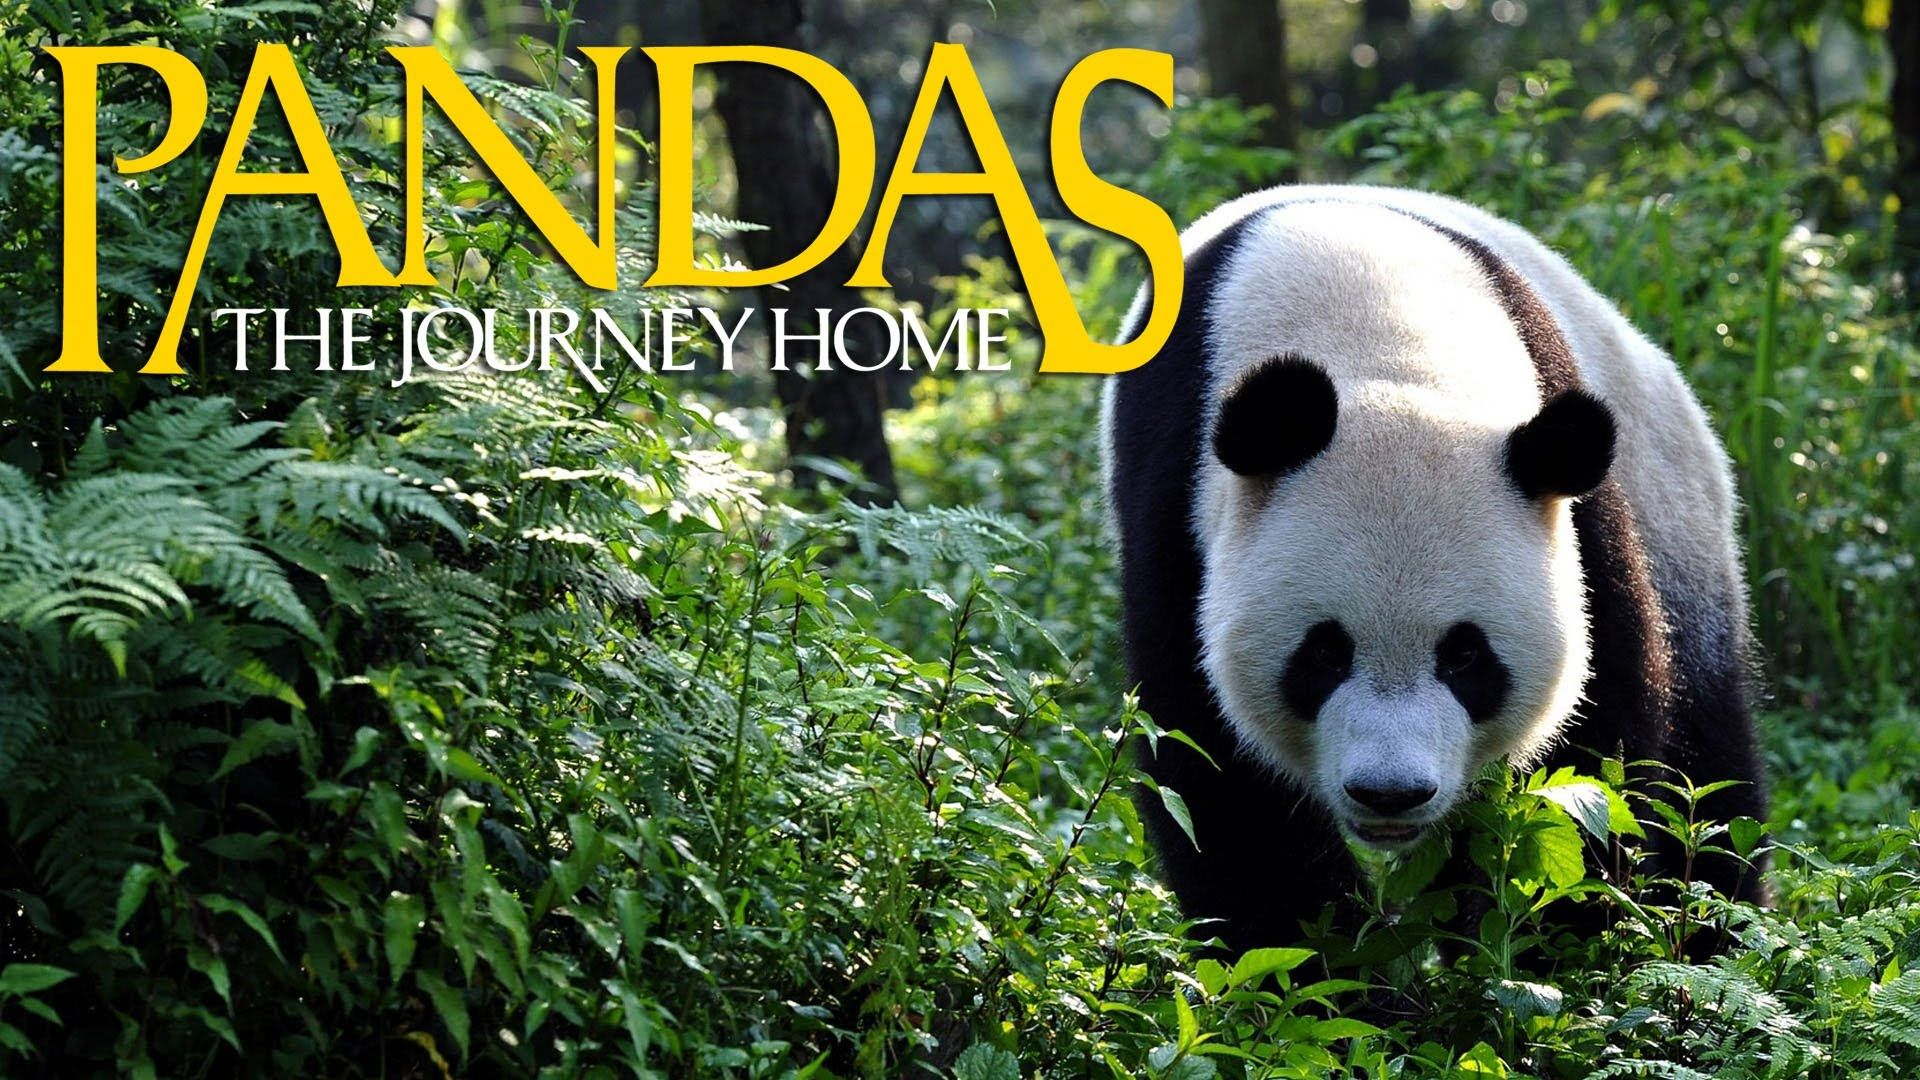 Pandas The Journey Home Trailer Obsessed Saw This At